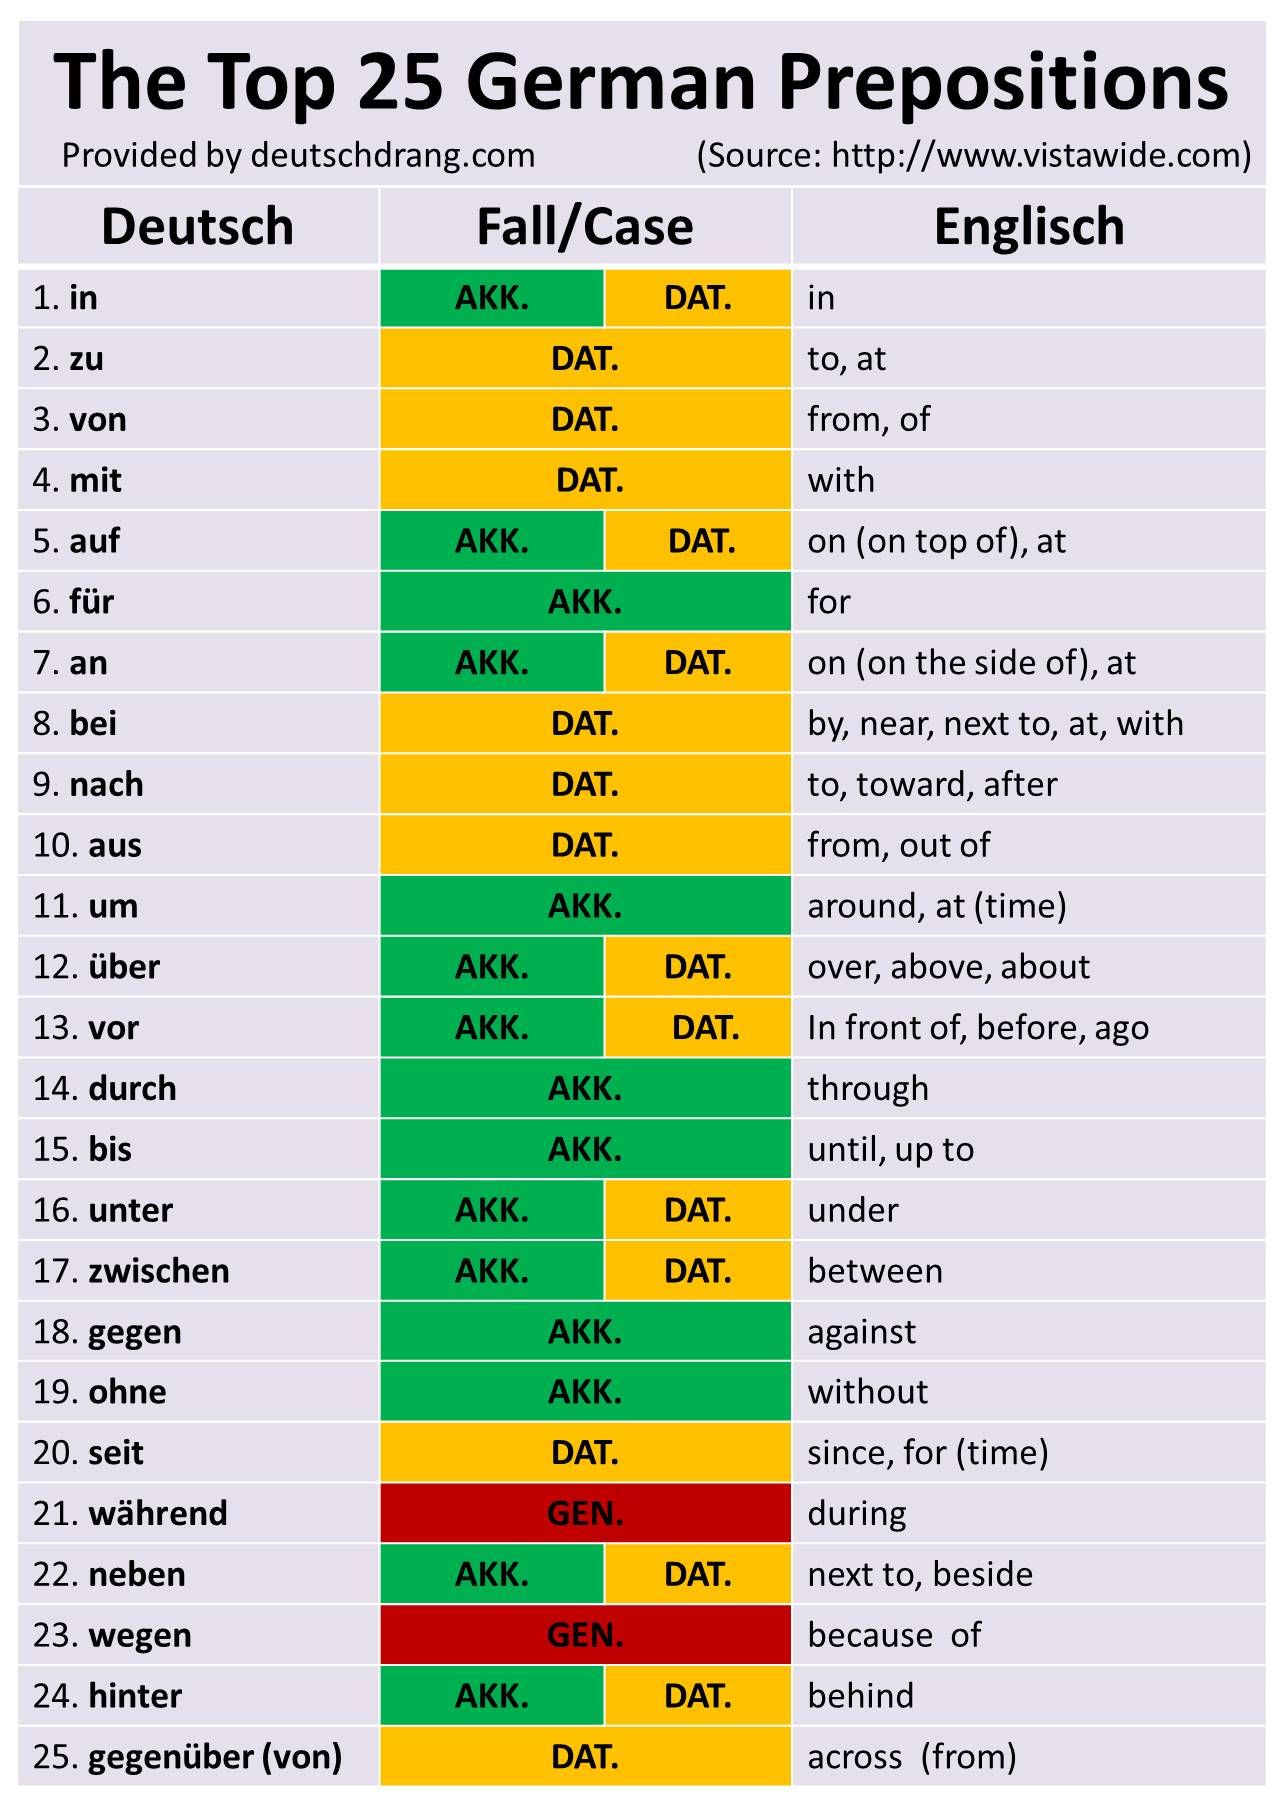 Top 25 German Prepositions With Their Respective Cases